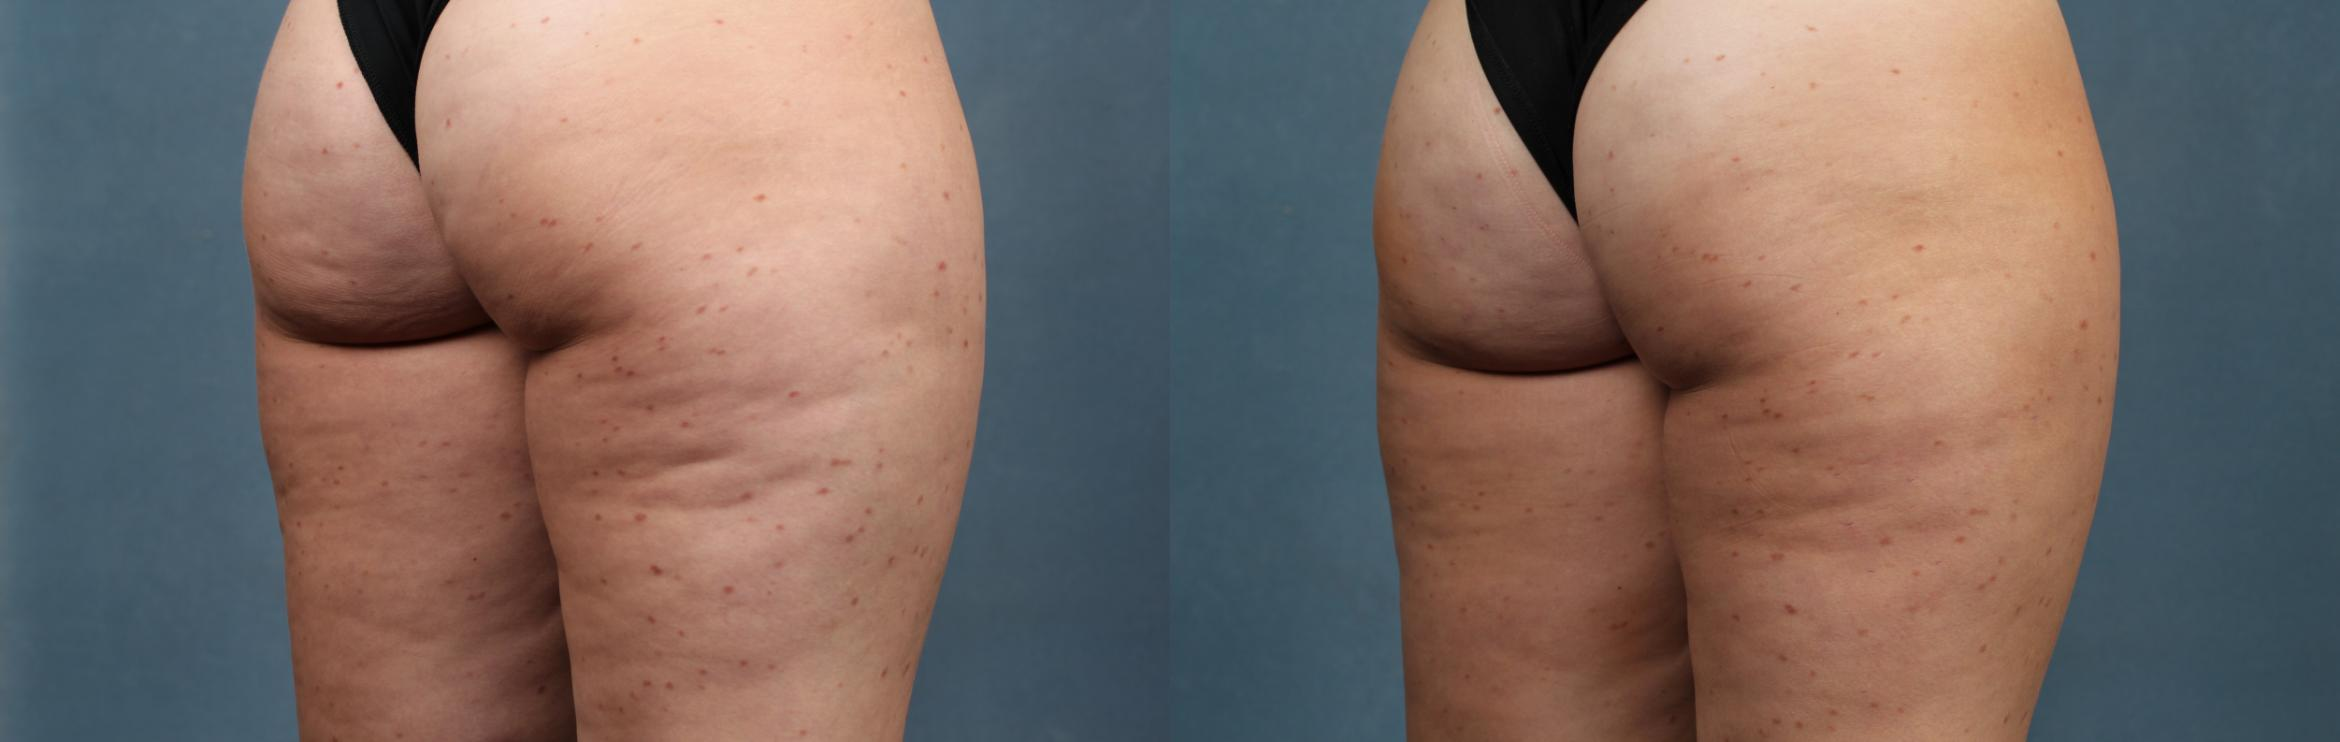 Cellulite Treatments Case 622 Before & After Right Oblique | Louisville, KY | CaloSpa® Rejuvenation Center